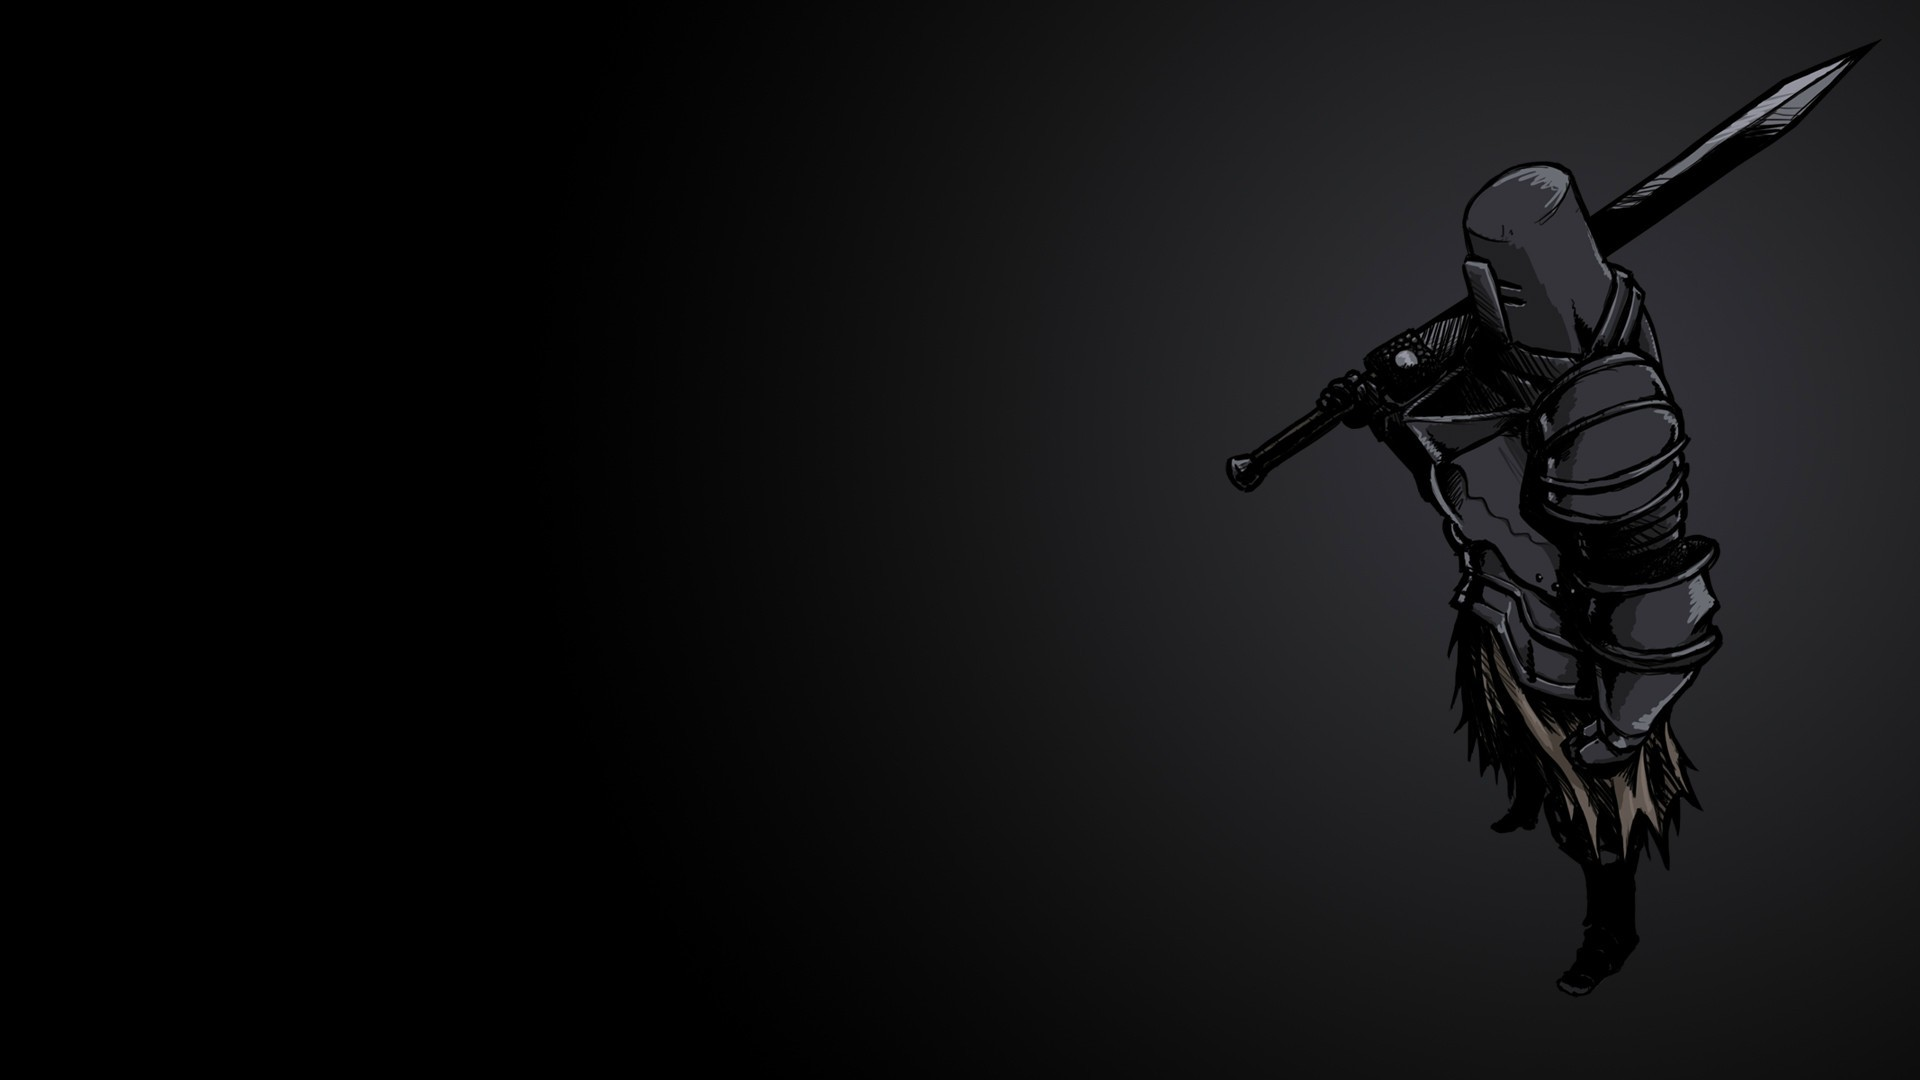 1129943 edgy wallpaper 1920x1080 for